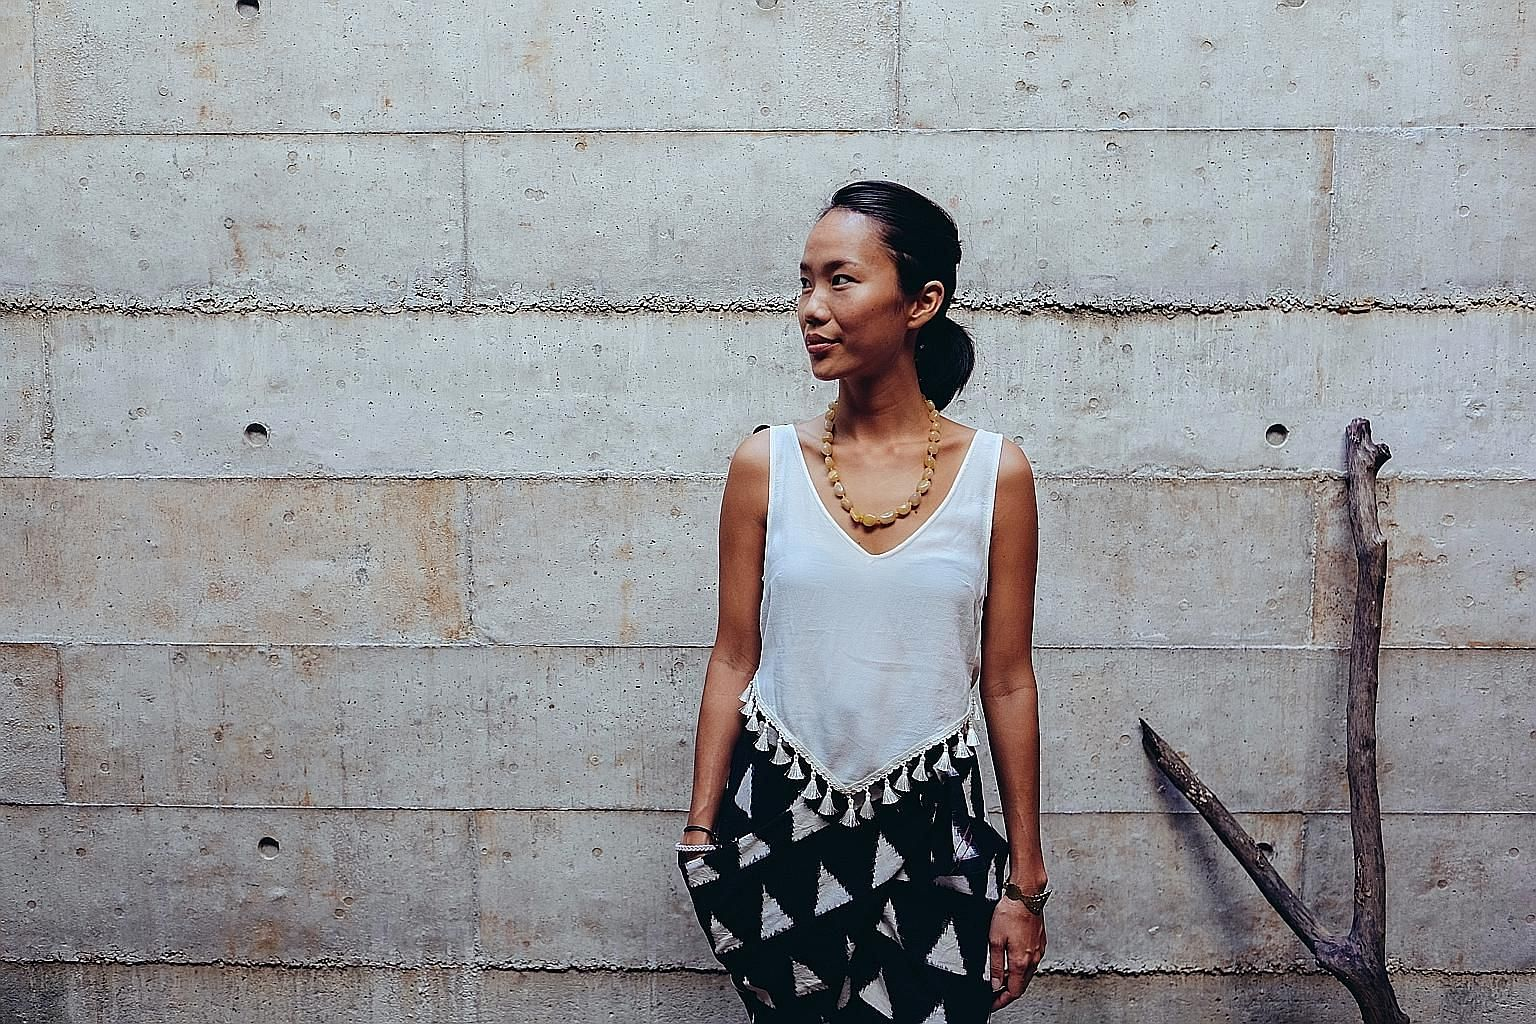 Ms Ho Renyung co-founded socially conscious clothing label Matter in 2014.